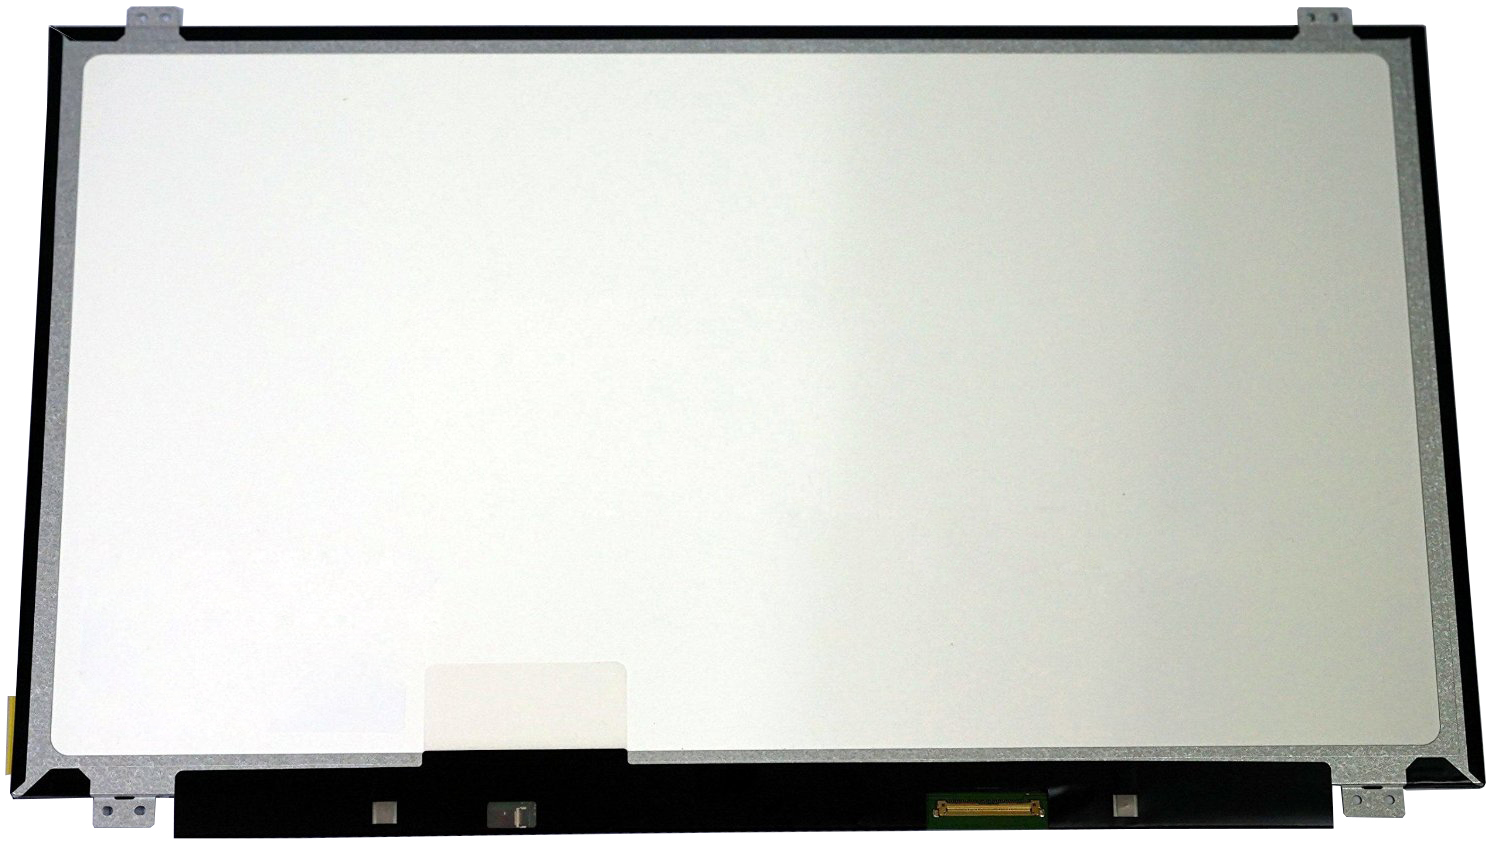 QuYing Laptop LCD Screen for Acer ASPIRE E5-474 E5-474G E1-422 E1-422G E1-430 E1-430G E1-430P SERIES (14.0 inch 1366x768 30pin) quying laptop lcd screen for acer extensa 5235 as5551 series 15 6 inch 1366x768 40pin tk